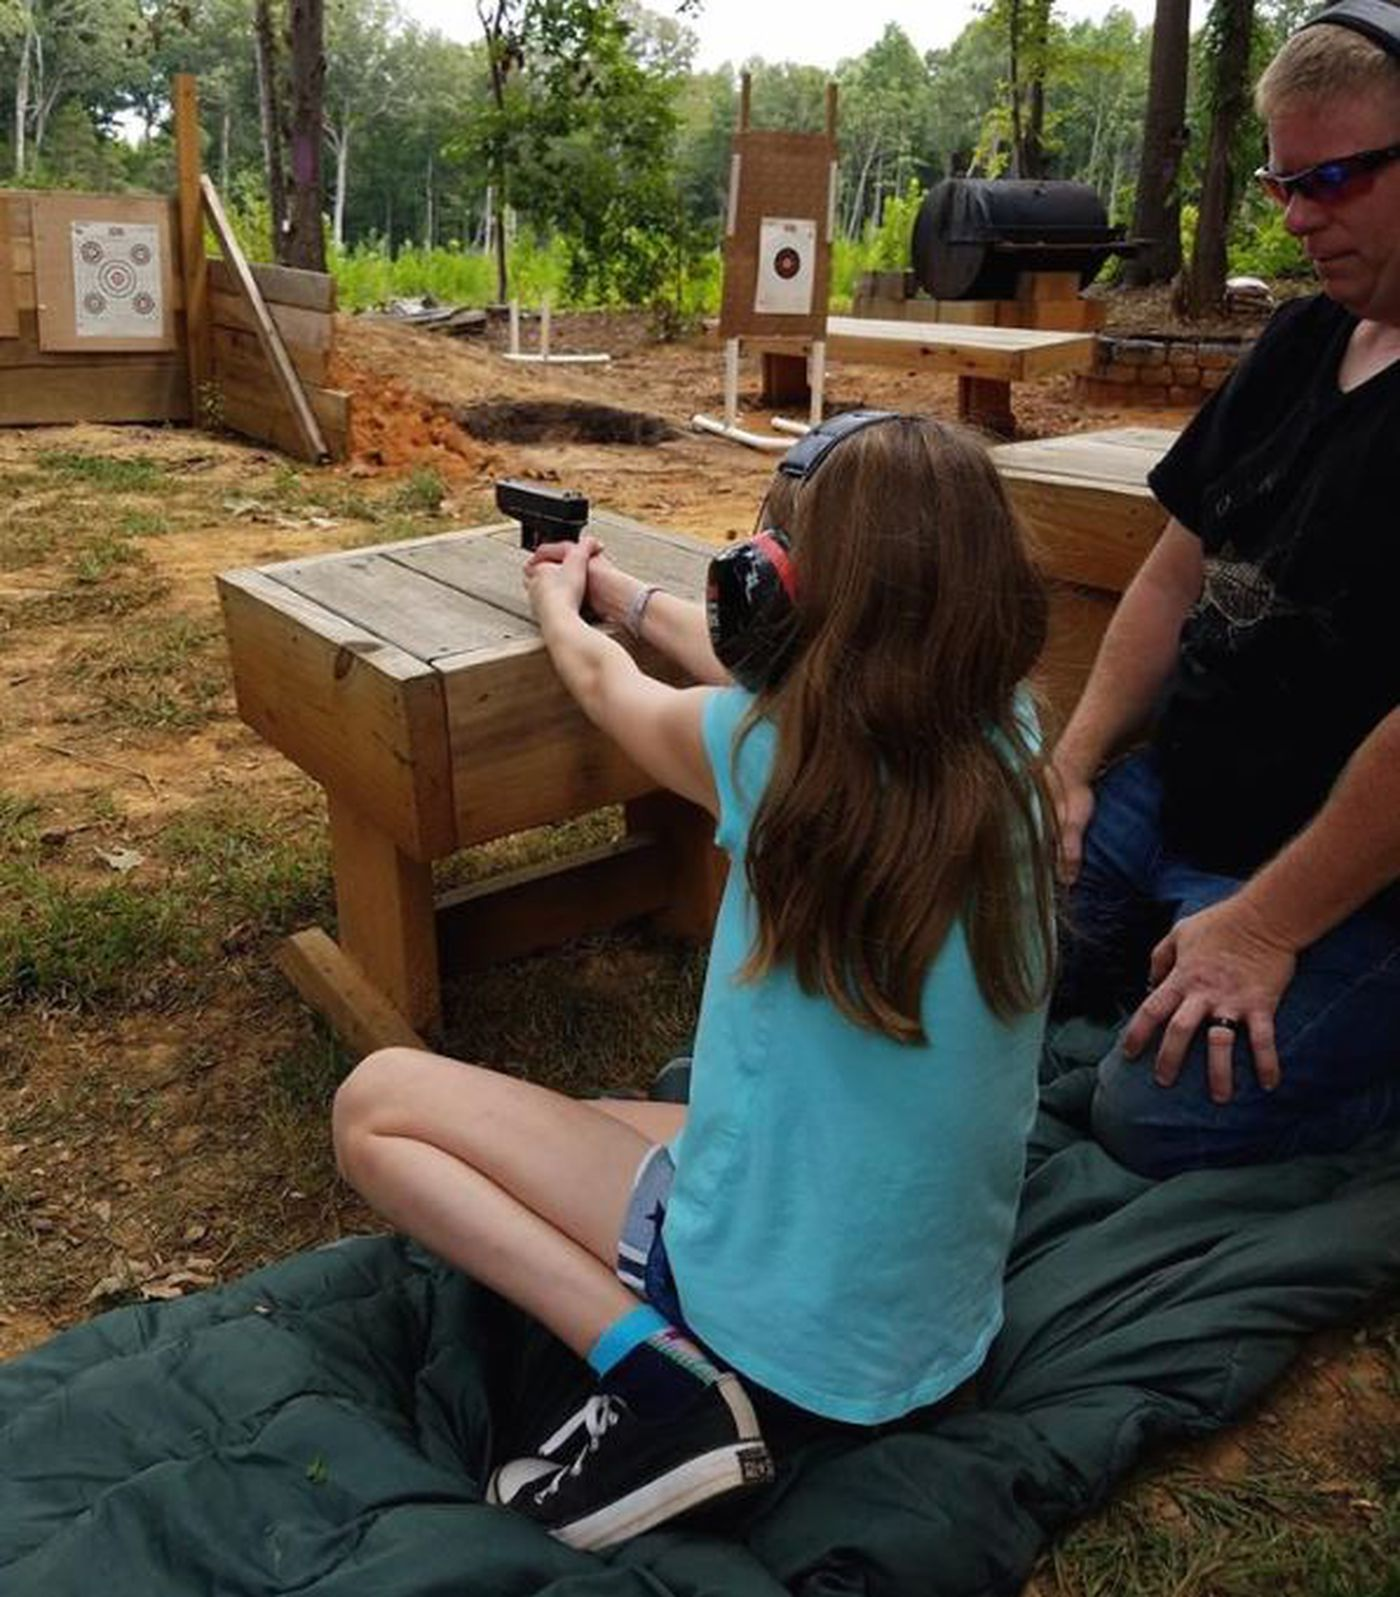 Gun Training for Kids as Young as 6 Years Old